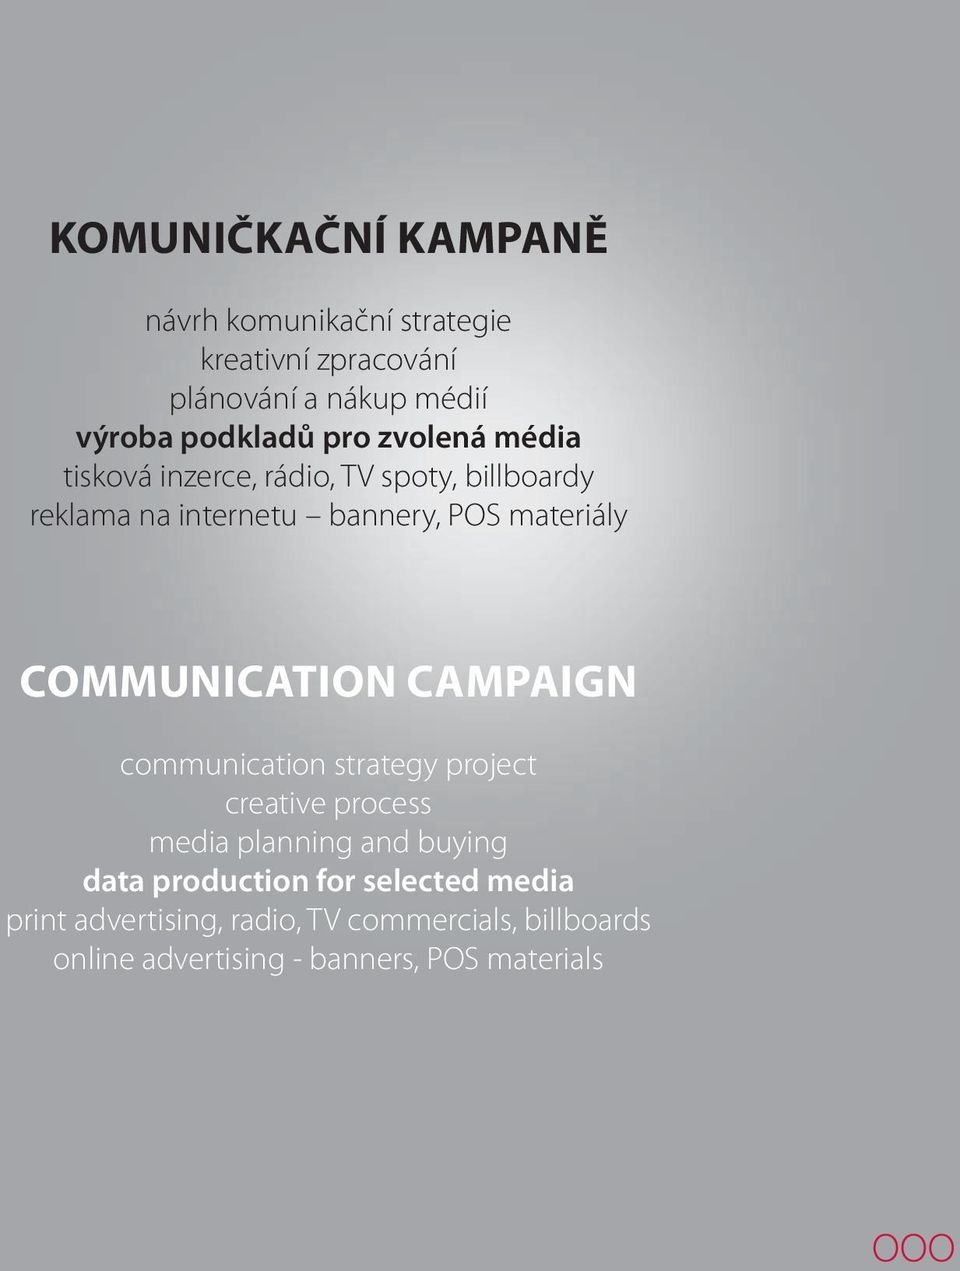 COMMUNICATION CAMPAIGN communication strategy project creative process media planning and buying data